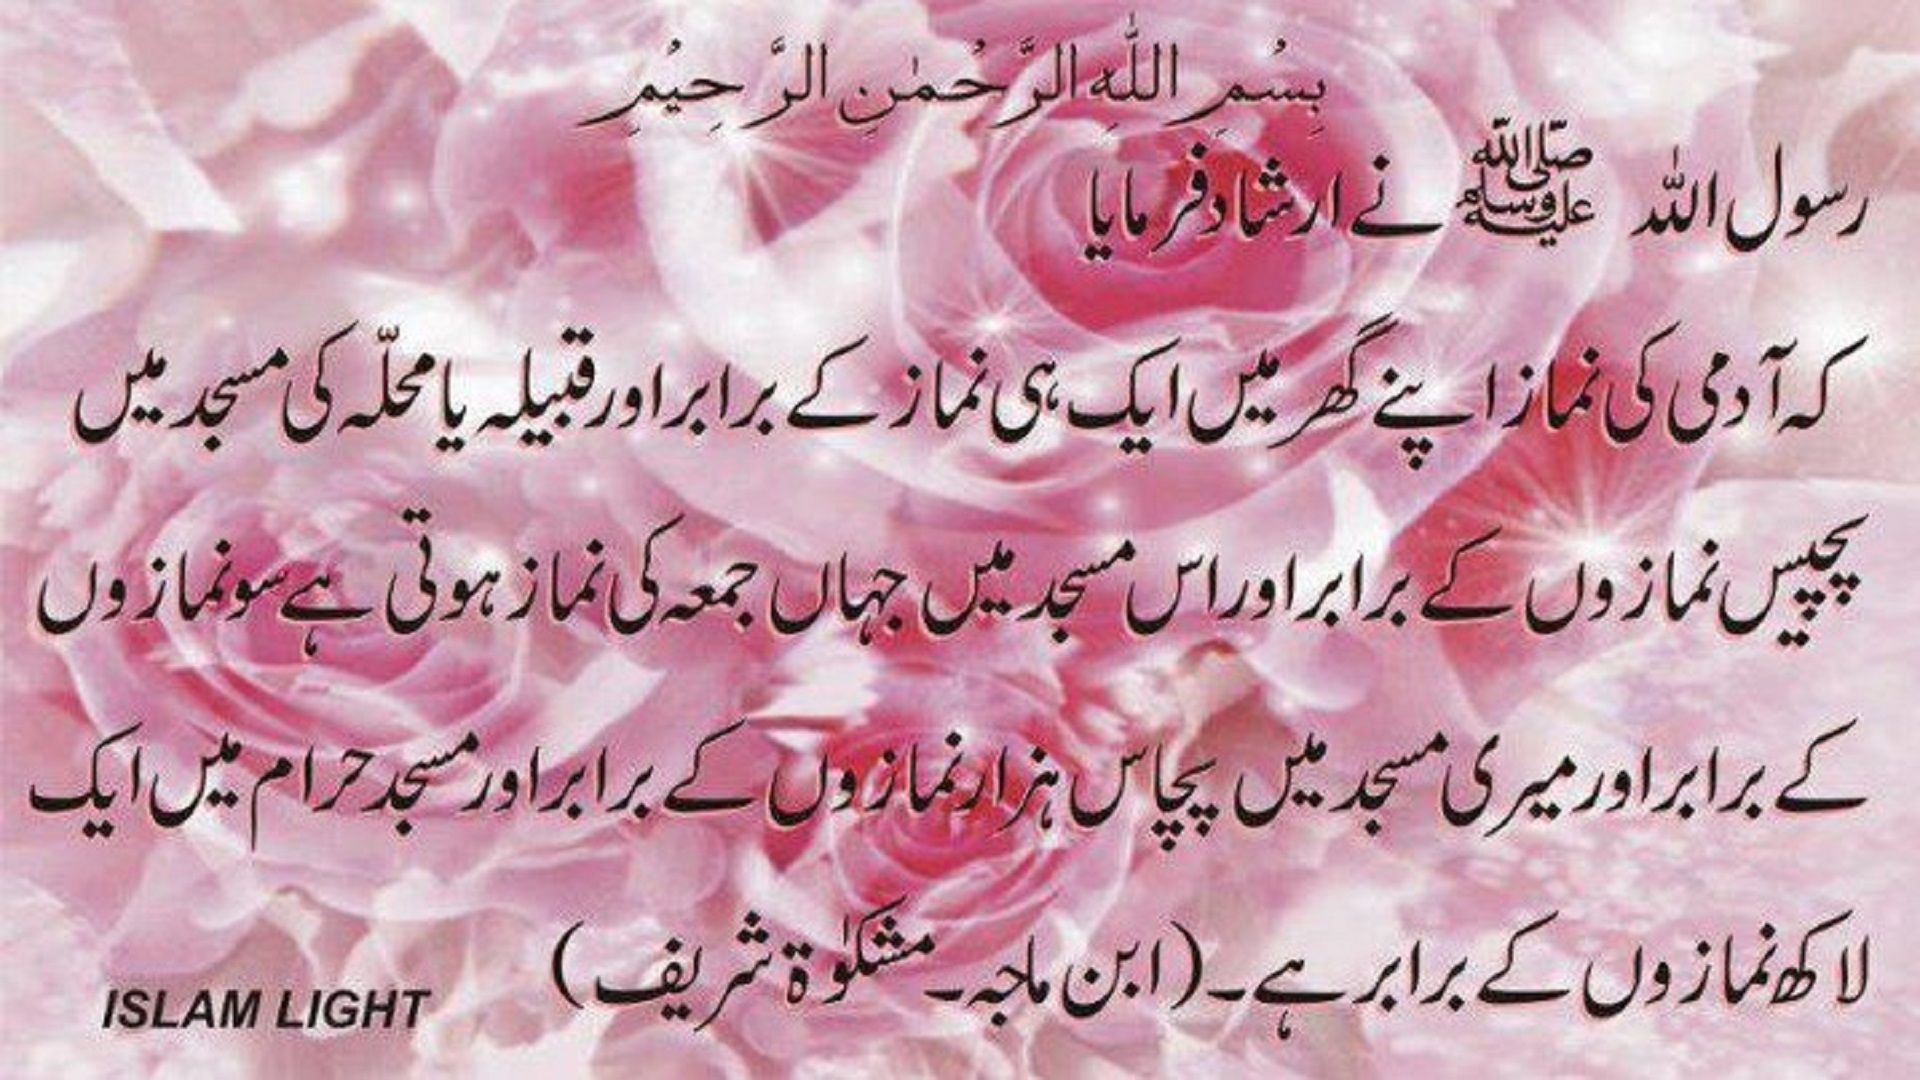 Best Quotes Hd Wallpapers For Mobile Adees About Salah Namaz Best Quotes About Namaz Salah